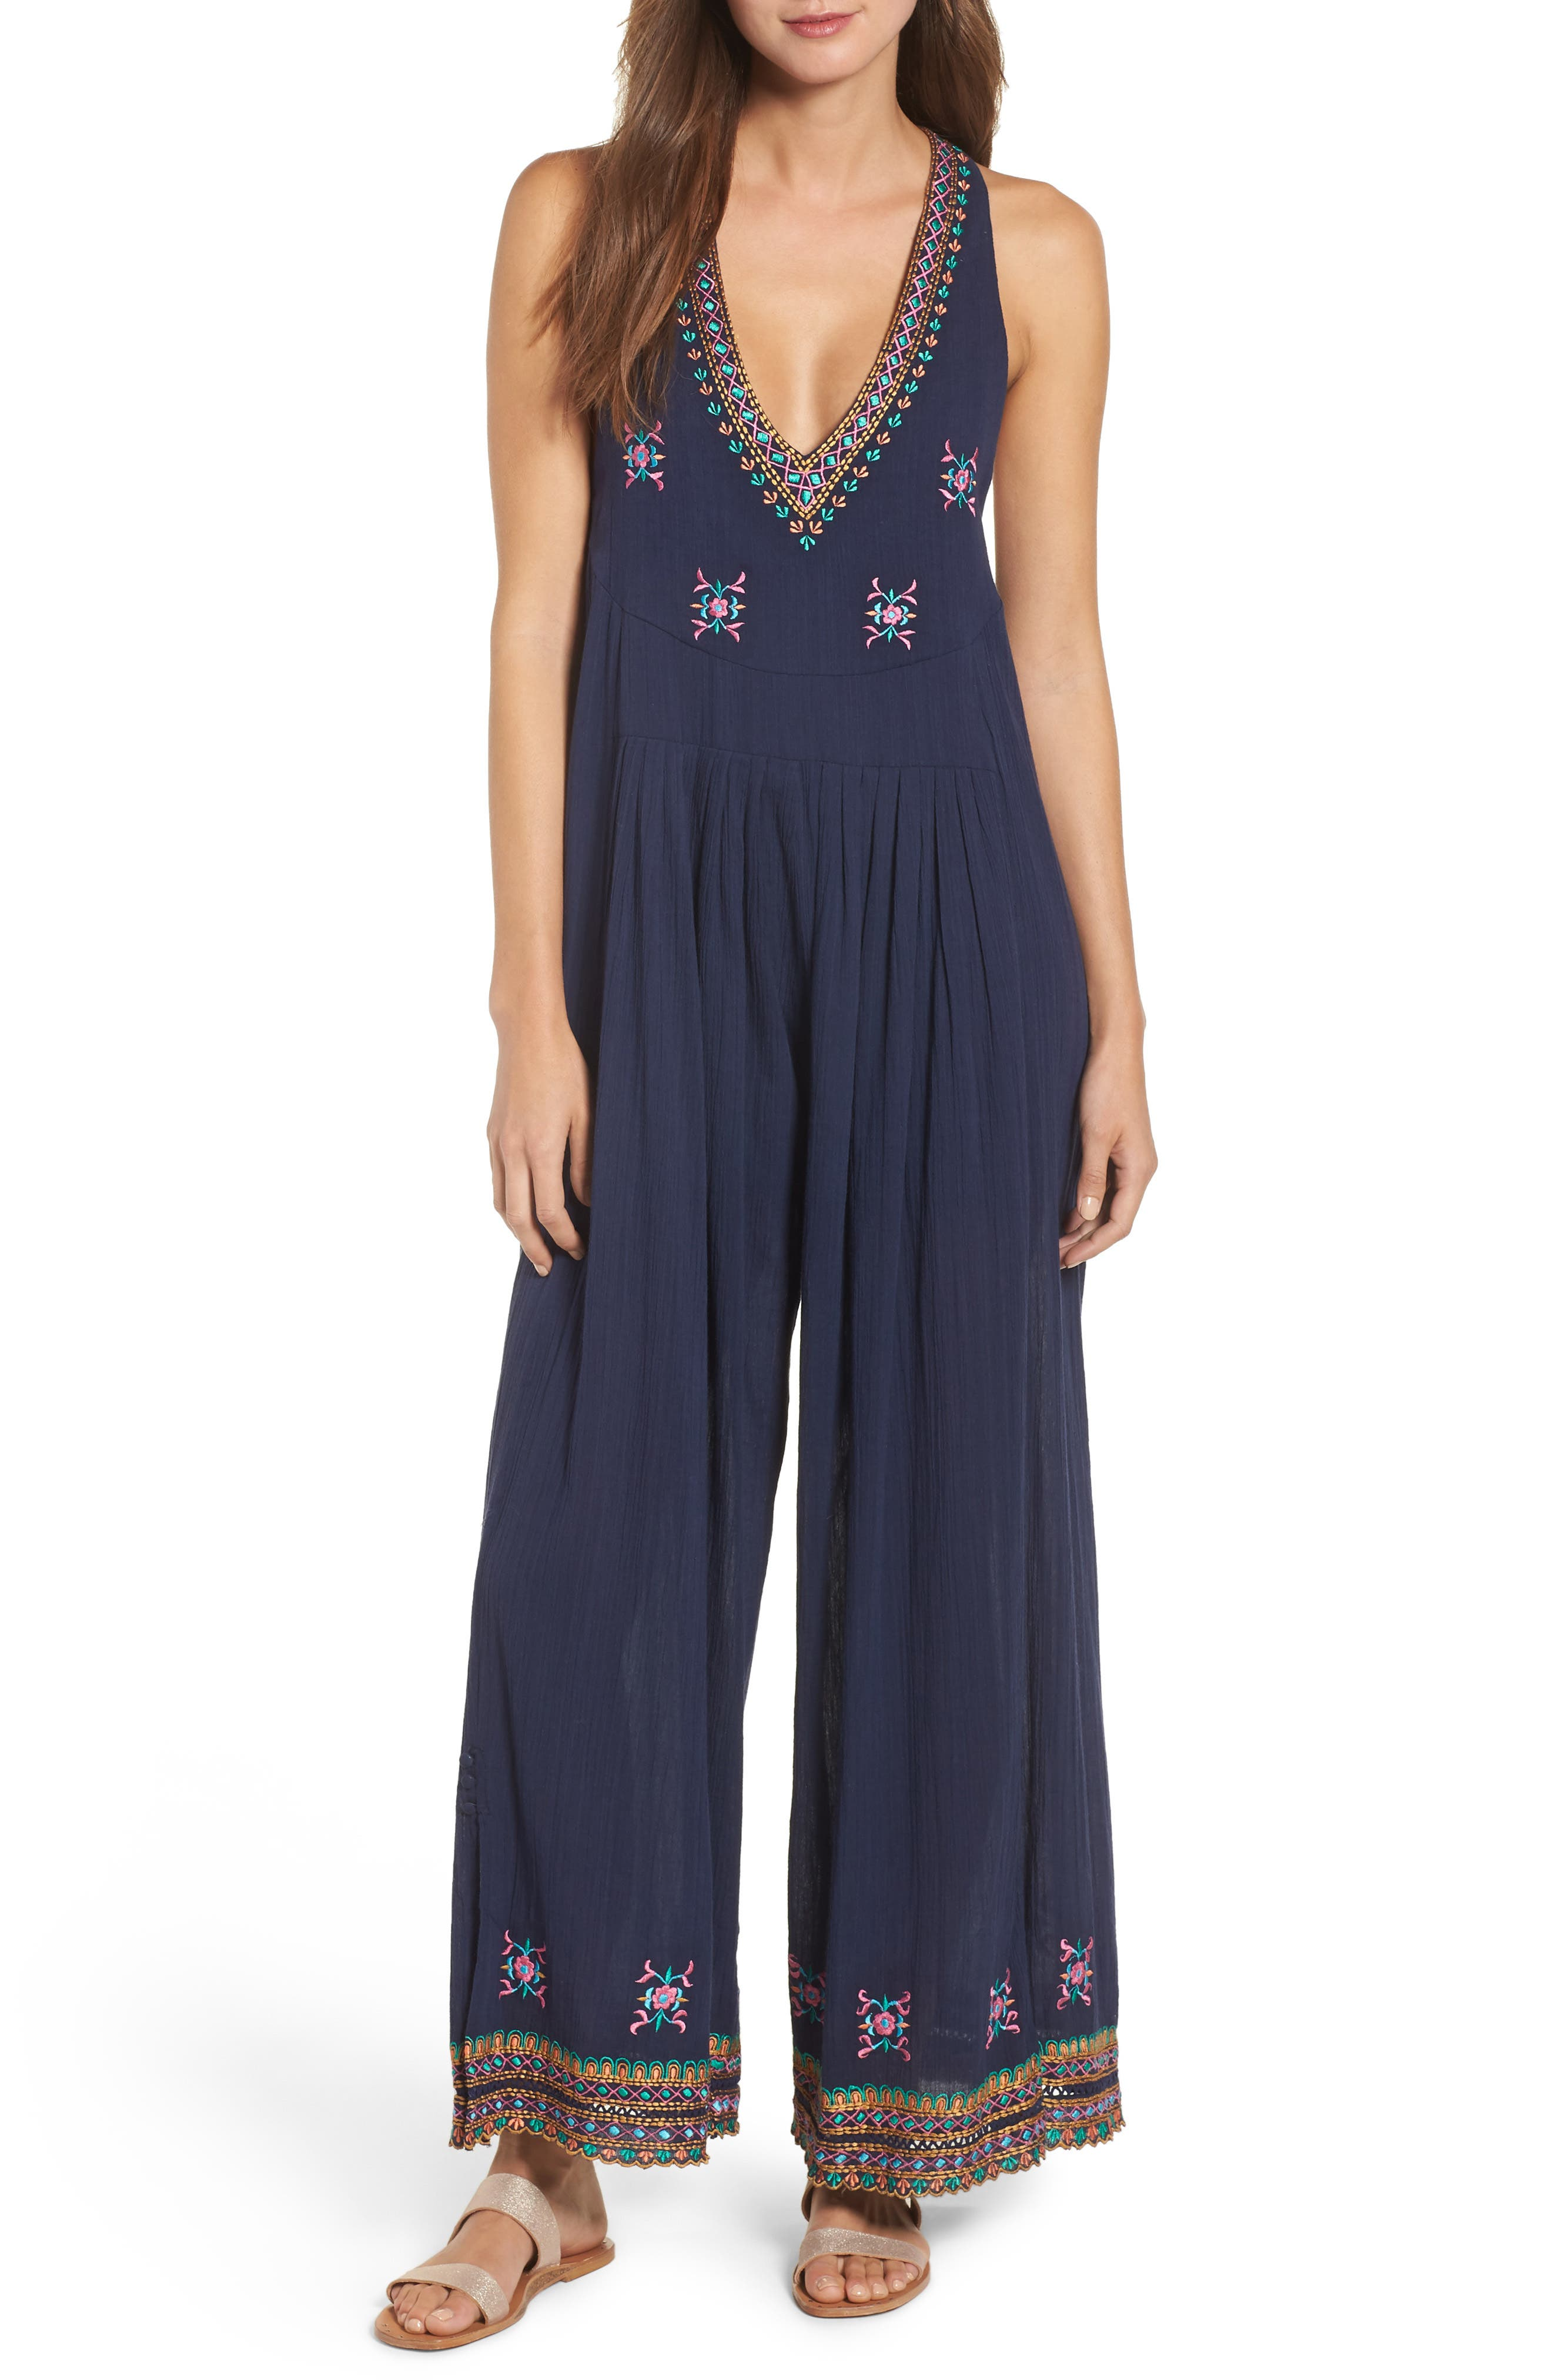 KAS NEW YORK OSIAN HAND EMBROIDERED COTTON GAUZE JUMPSUIT